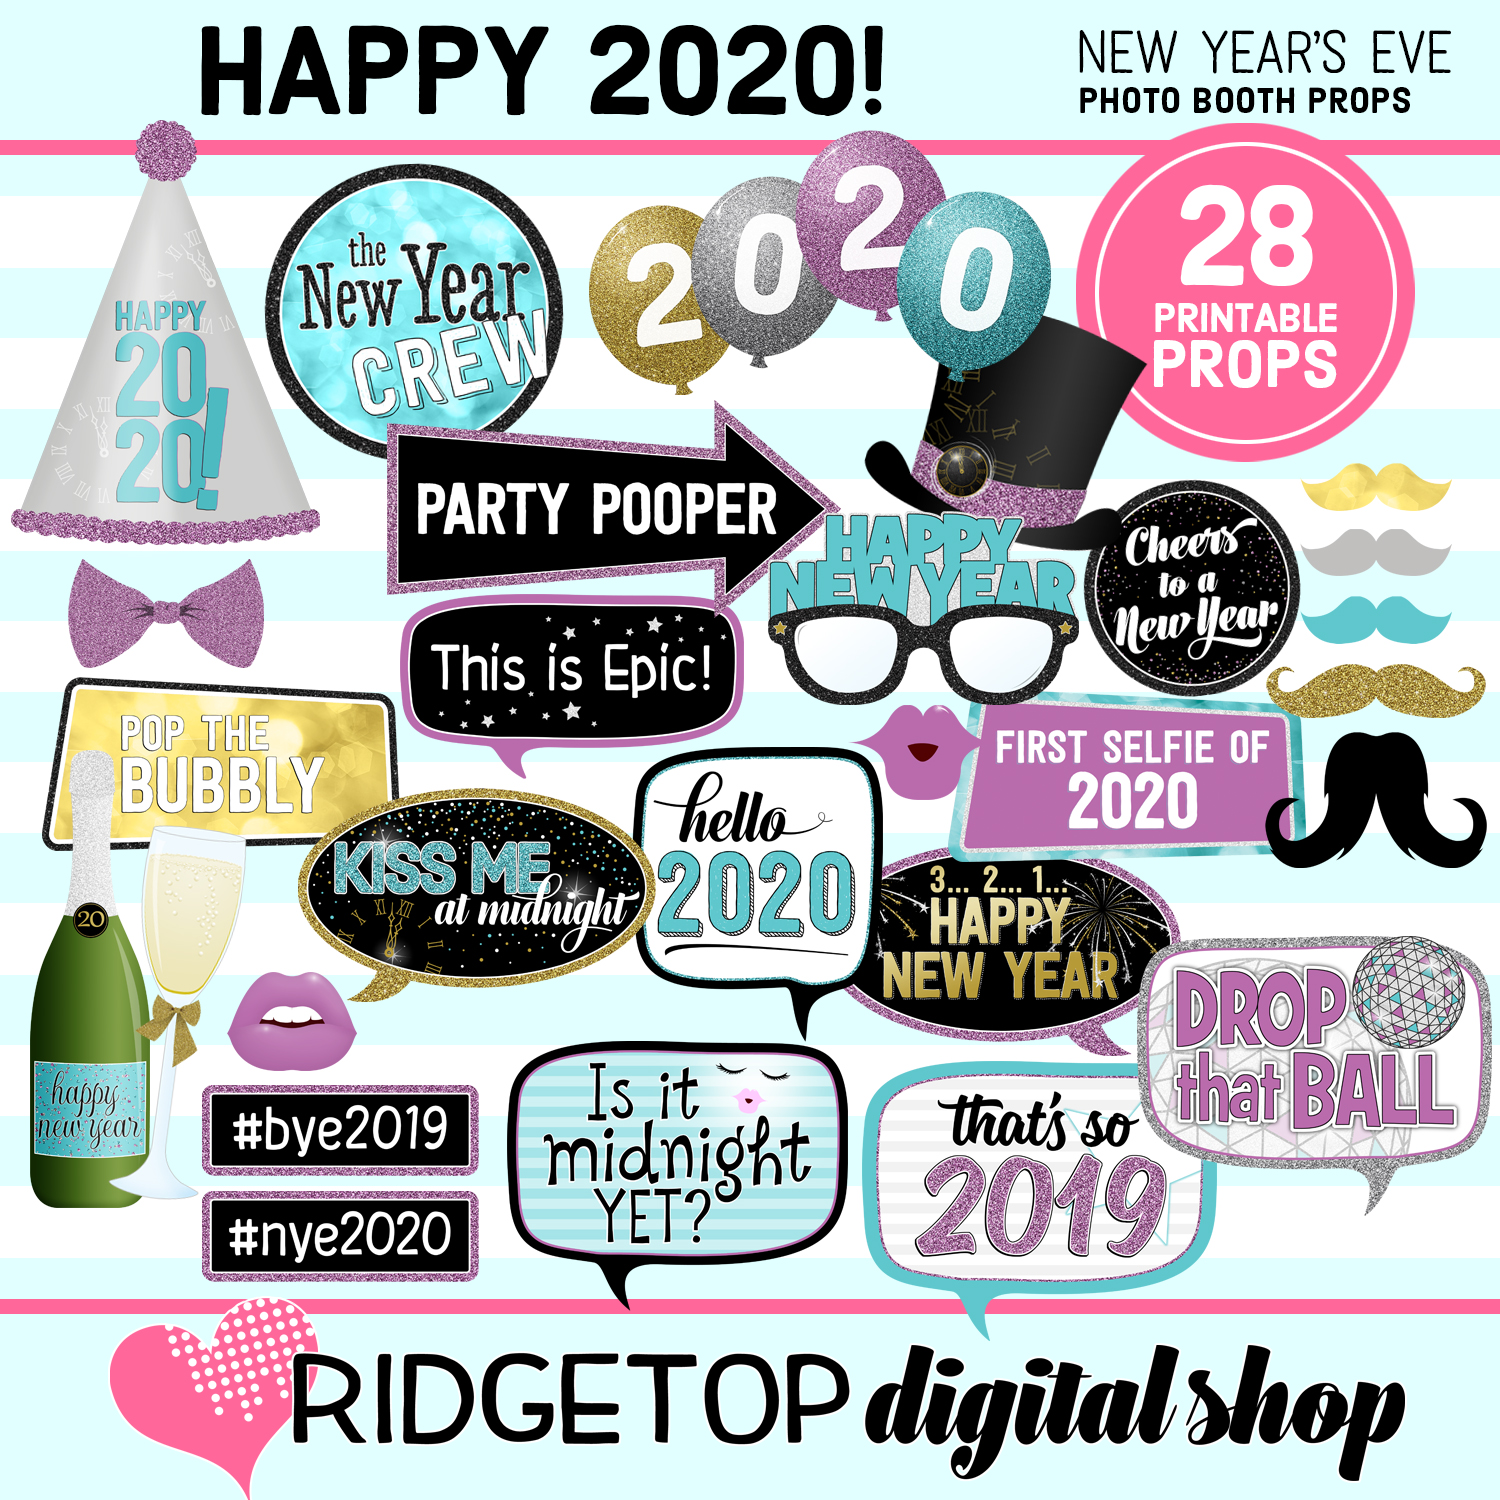 New Year's Eve 2020 Party Photo Booth Props